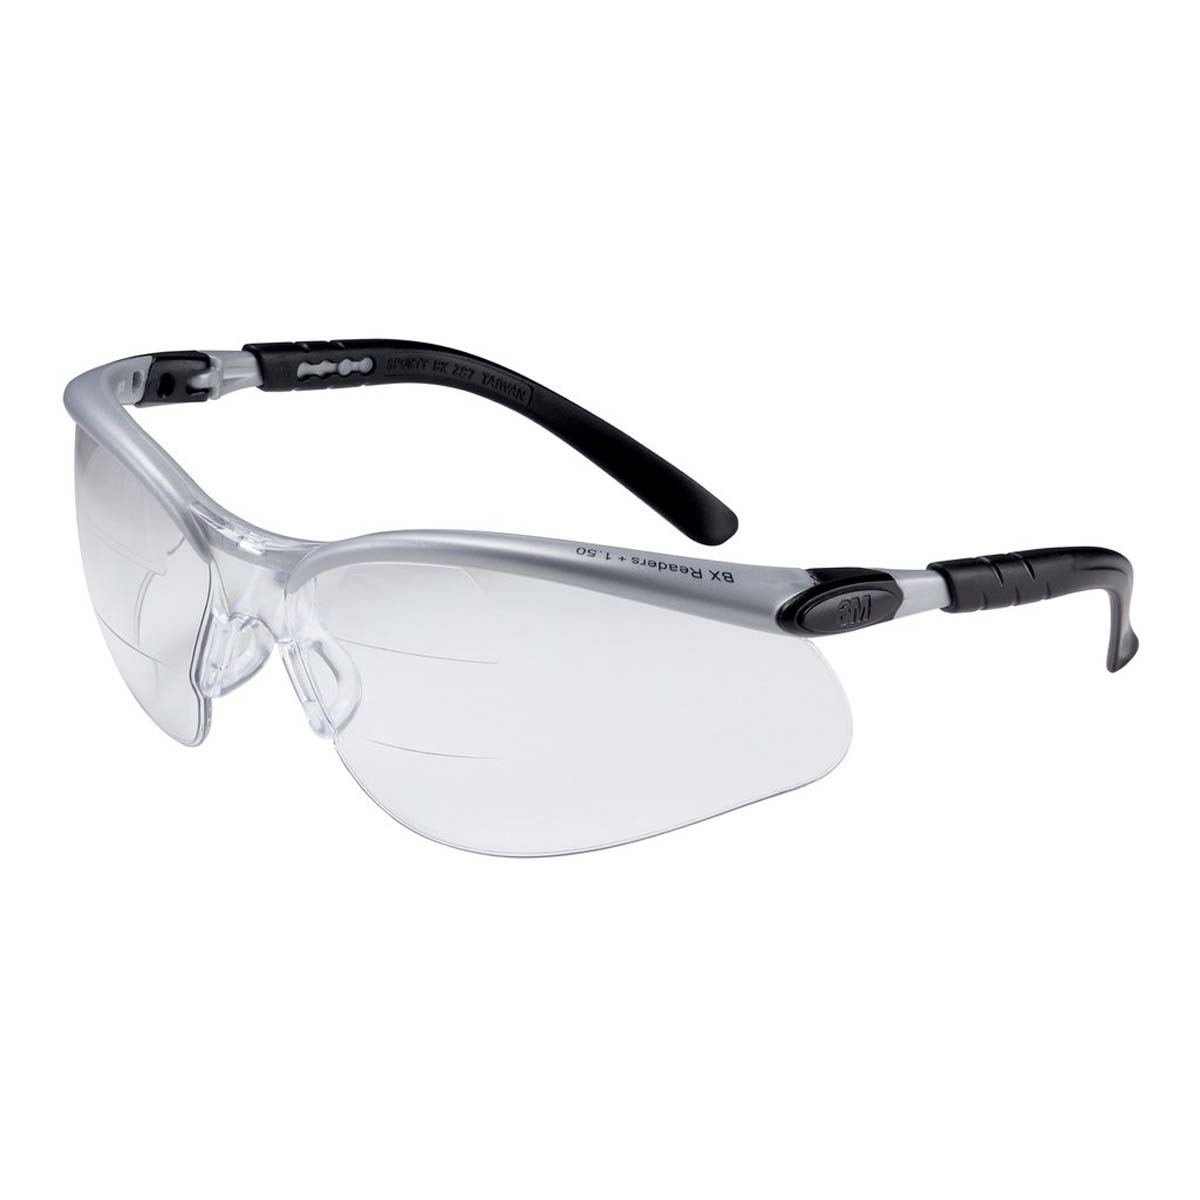 "3Mâ""¢ BXâ""¢ Dual Reader Protective Eyewear 11458-00000-20 Clear Anti-Fog Lens, Silver/Black Frame, +2.0 Top/Bottom Diopter"